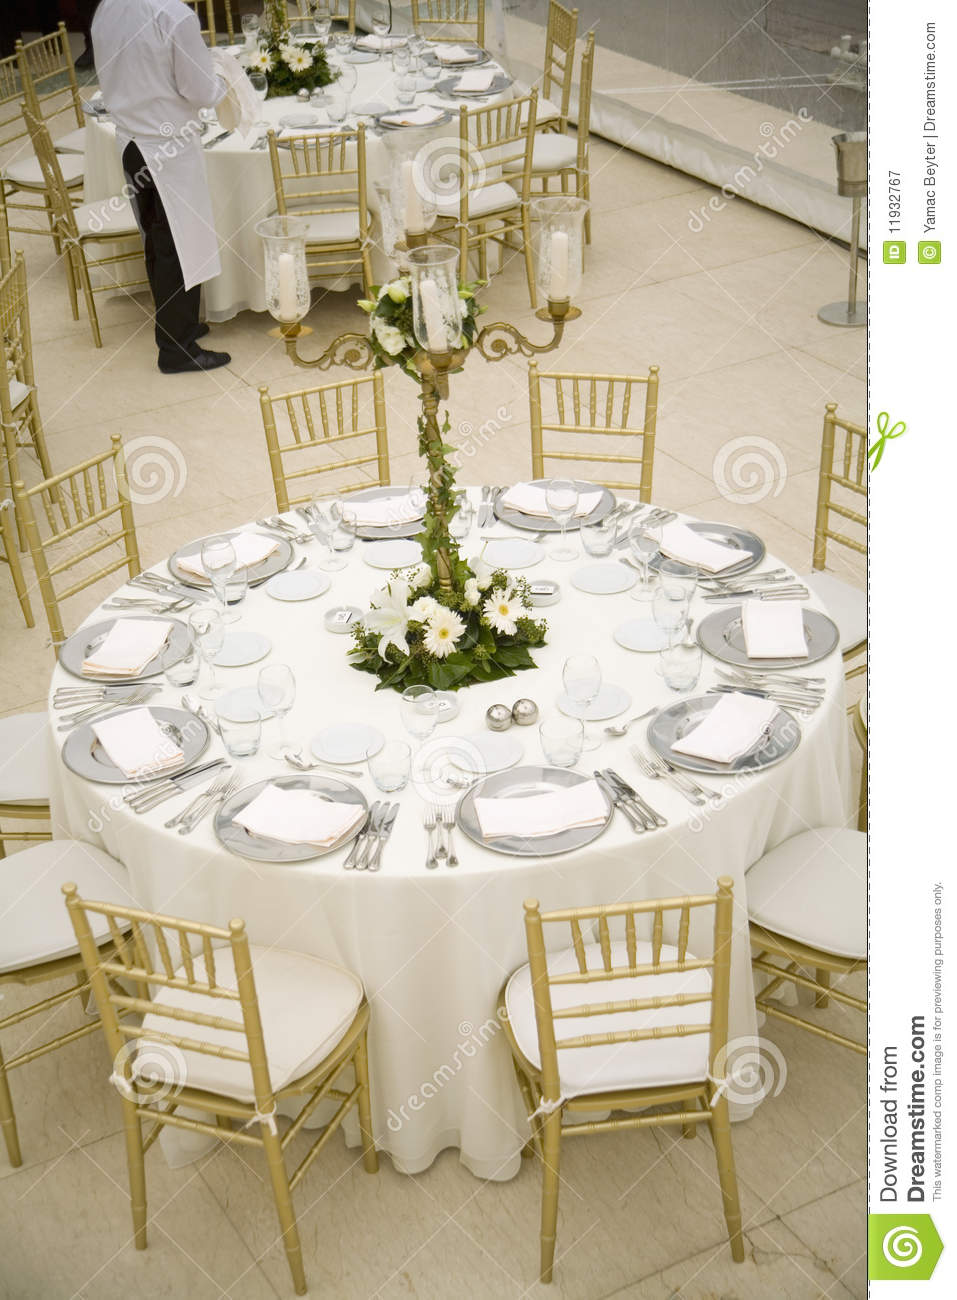 Wedding Table Setting In A Luxury Restaurant. Royalty Free Stock ...